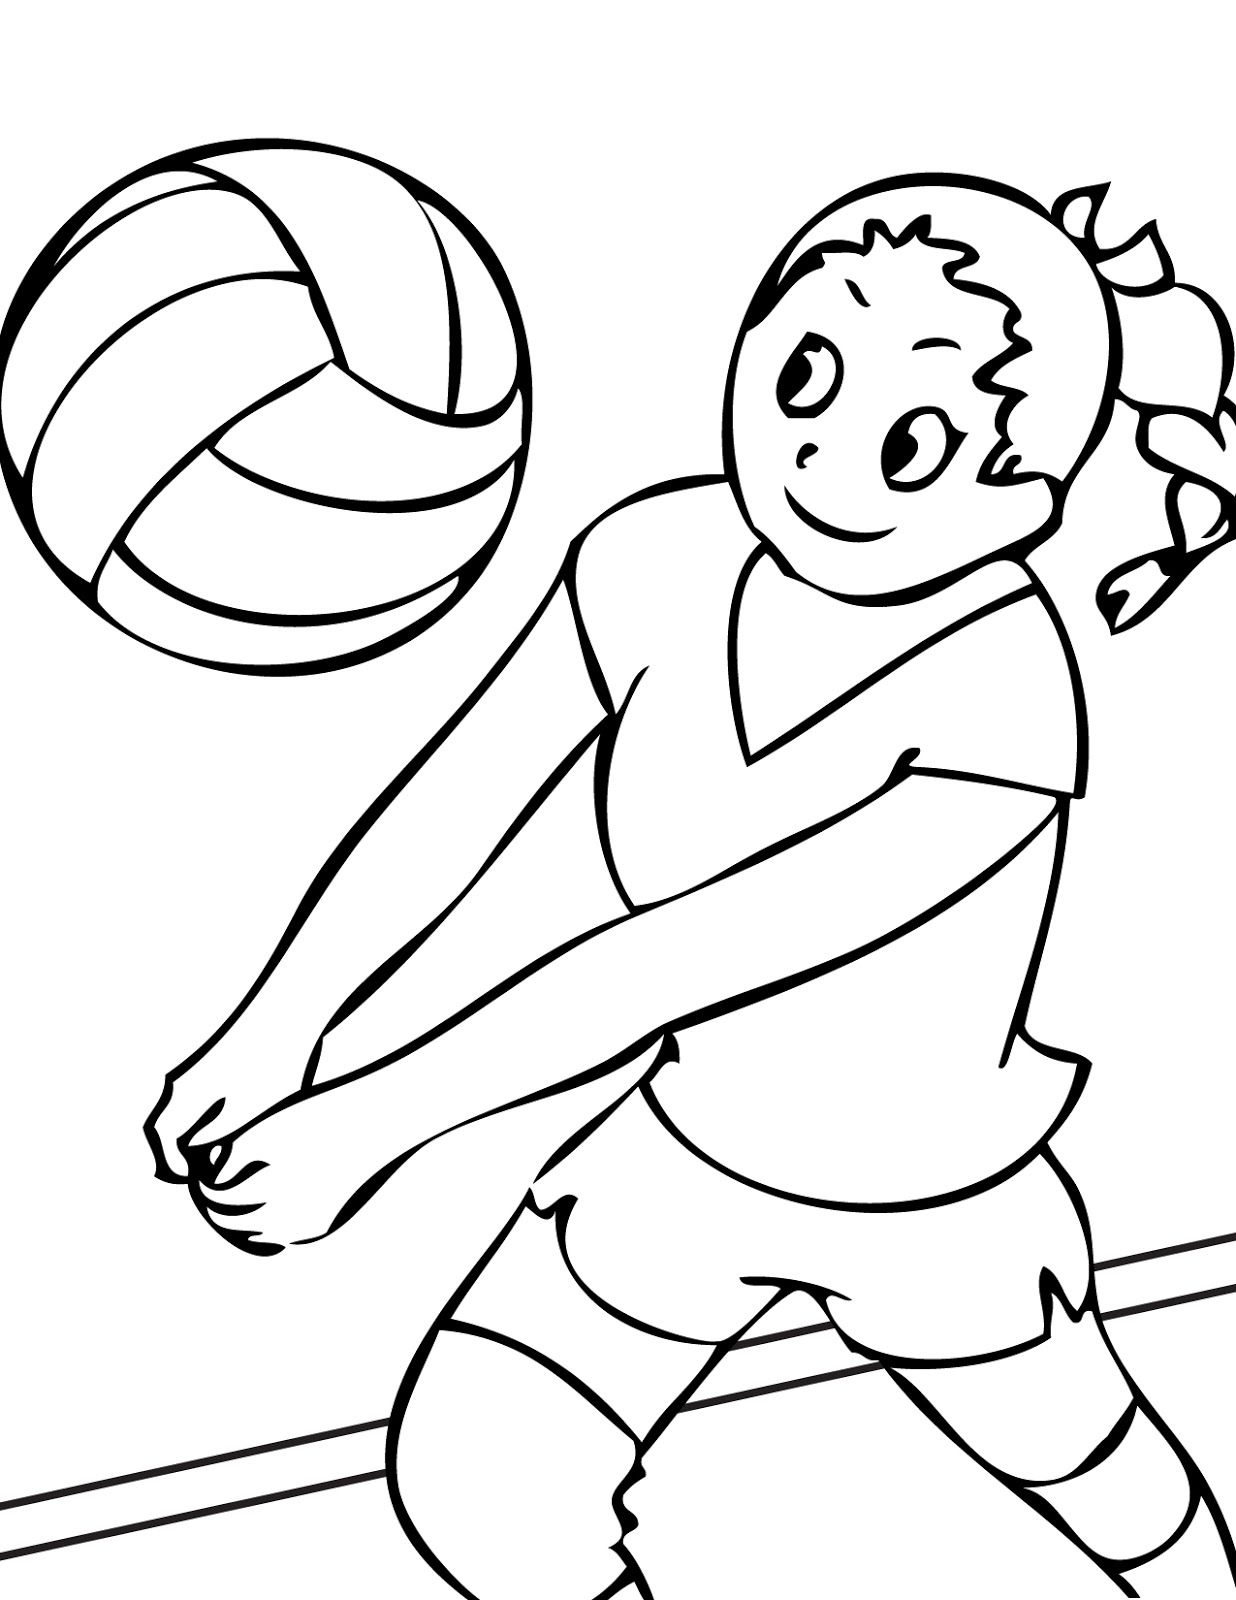 sports colouring free printable sports coloring pages for kids sports colouring